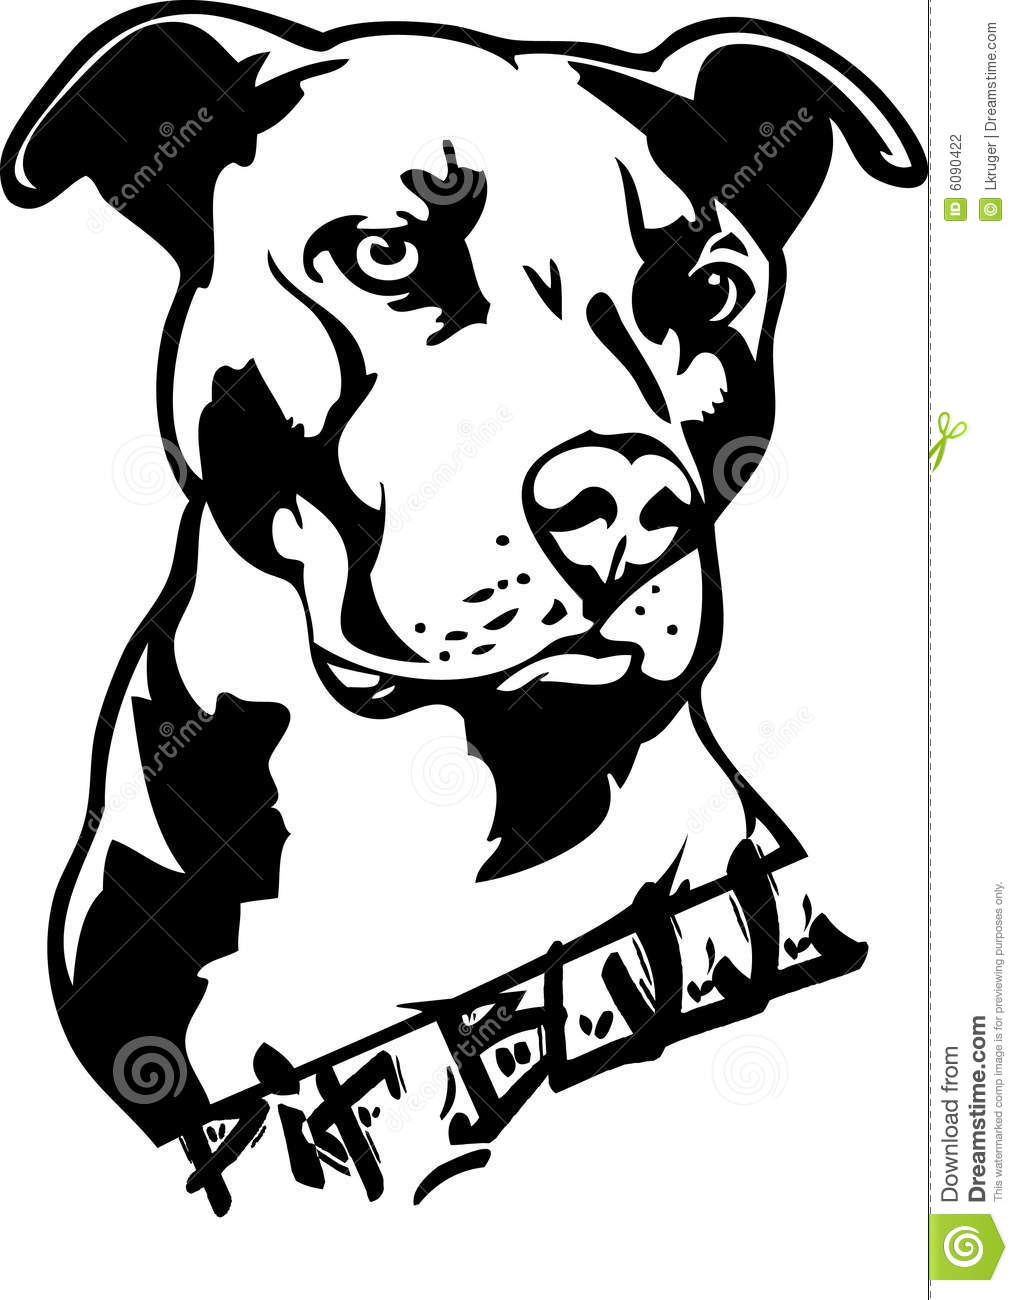 Pit Bull clipart #5, Download drawings